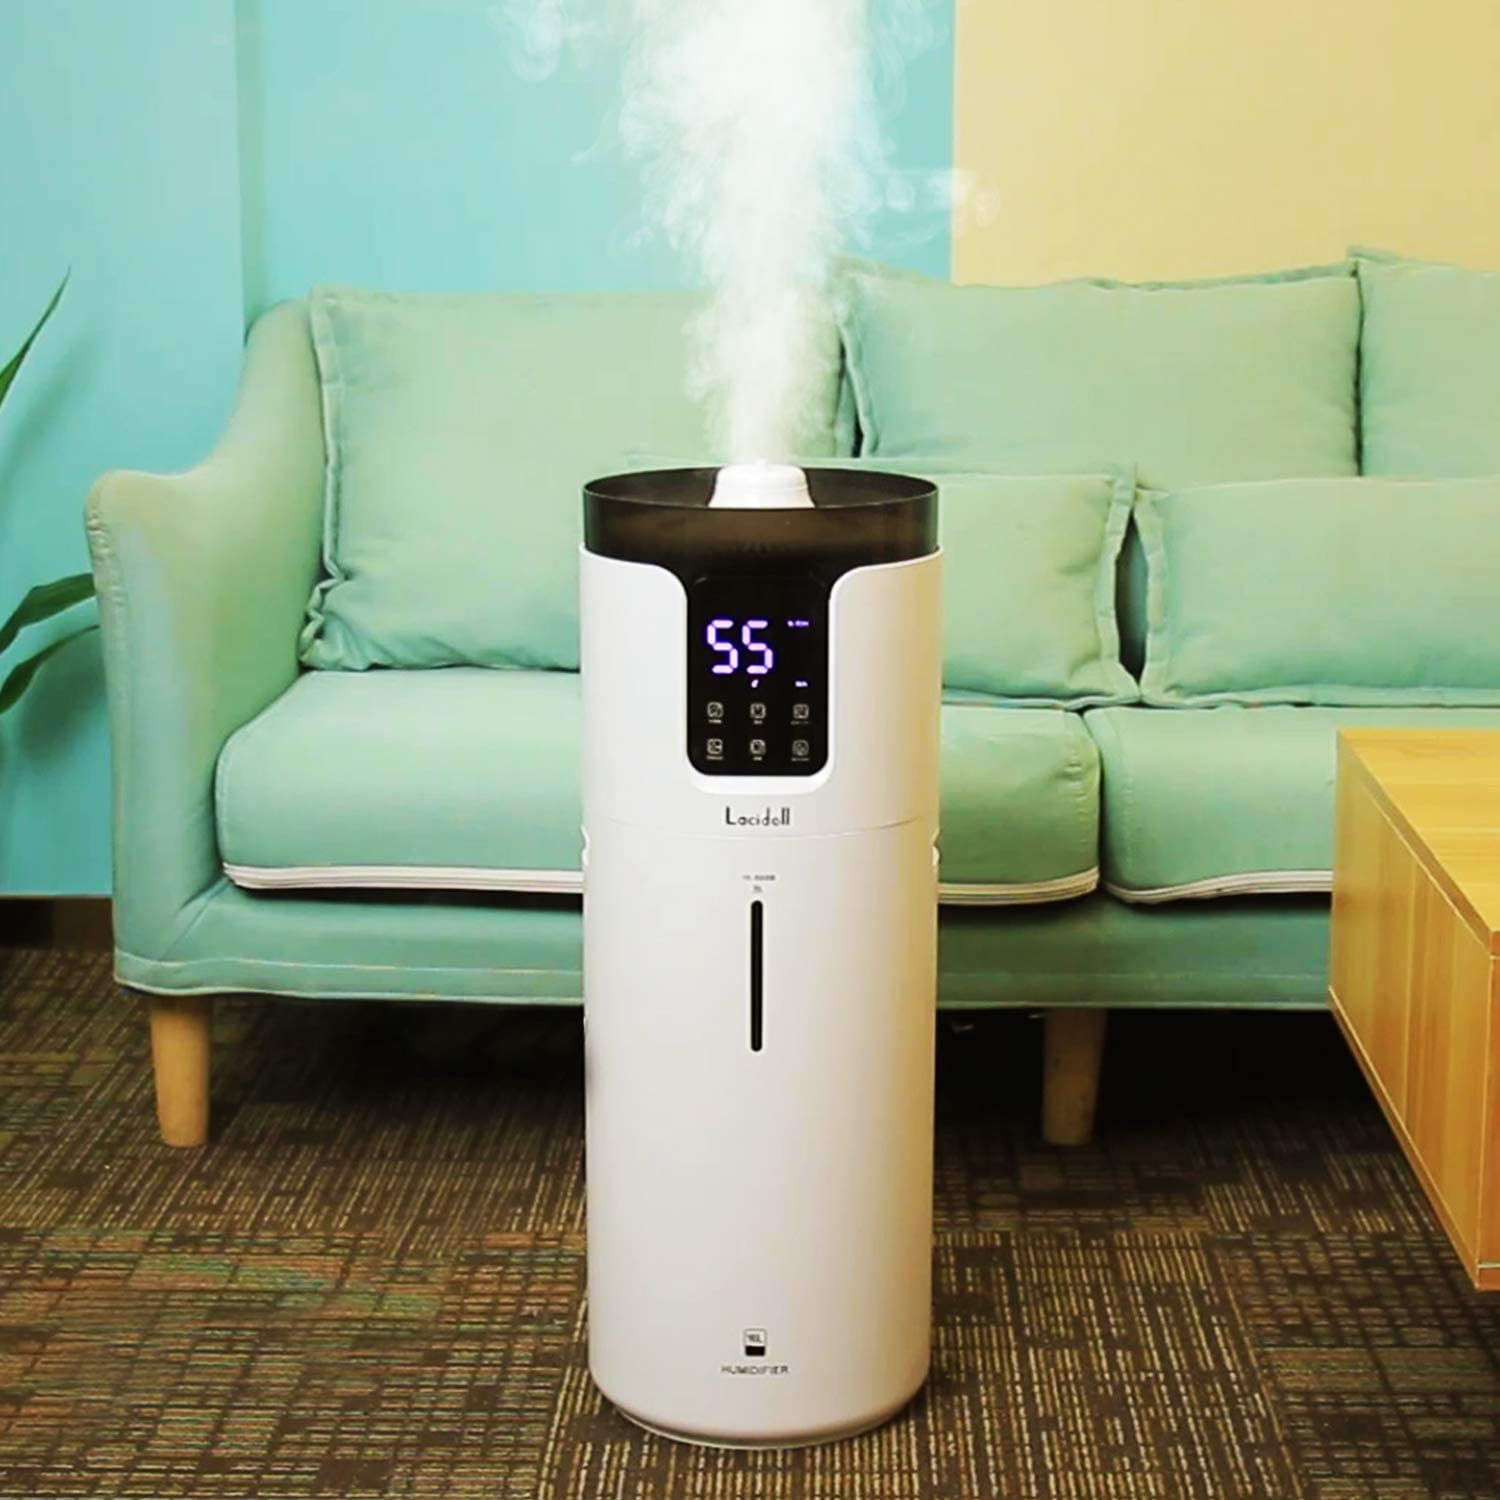 Lacidoll 4.2 Gal Tower Humidifiers for Large Room 1000 sq. ft, 16L Top Fill Cool Mist Ultrasonic Humidifier Quiet 1000mL/h Output with 360° Mist Tube for Home Office Workshop Greenhouse, White